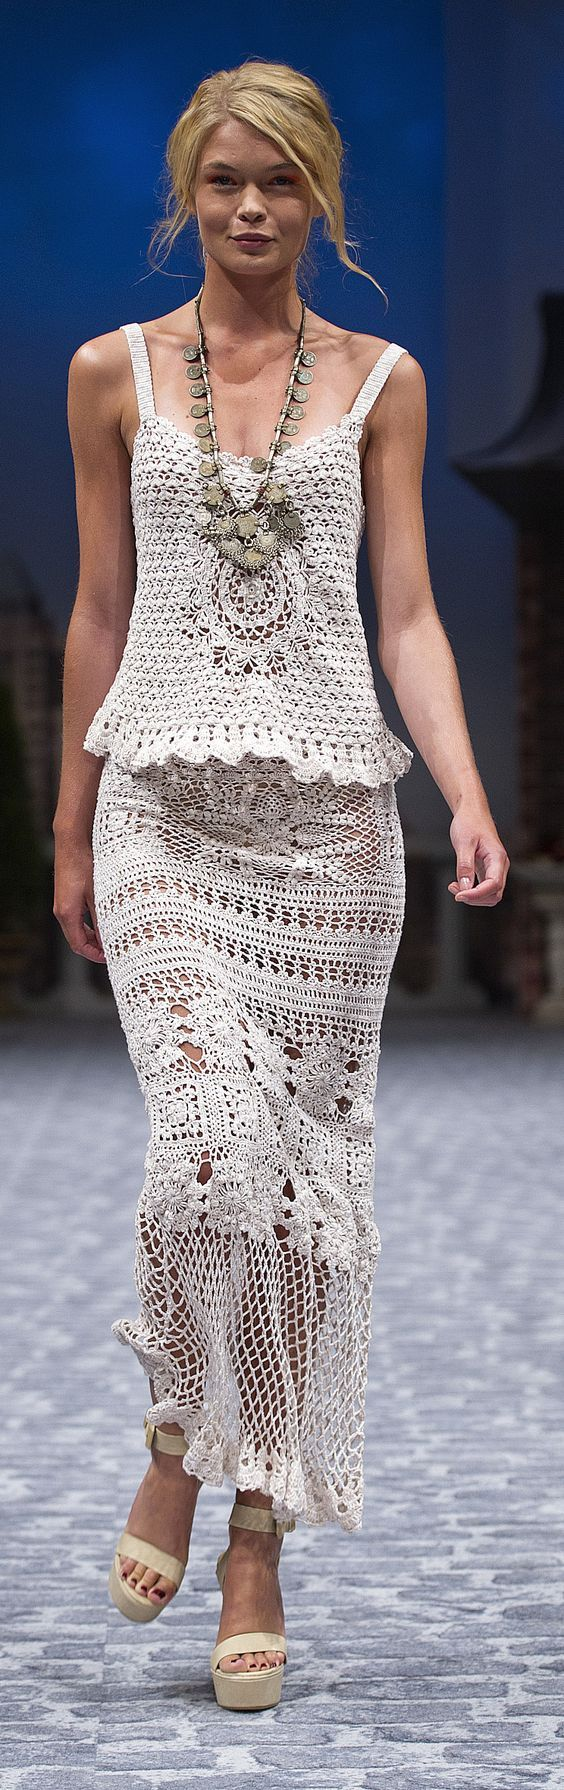 Crochet on the Runway :: Presented for the first time on the catwalks of Mercedez-Benz Fashion Week in Stockholm: